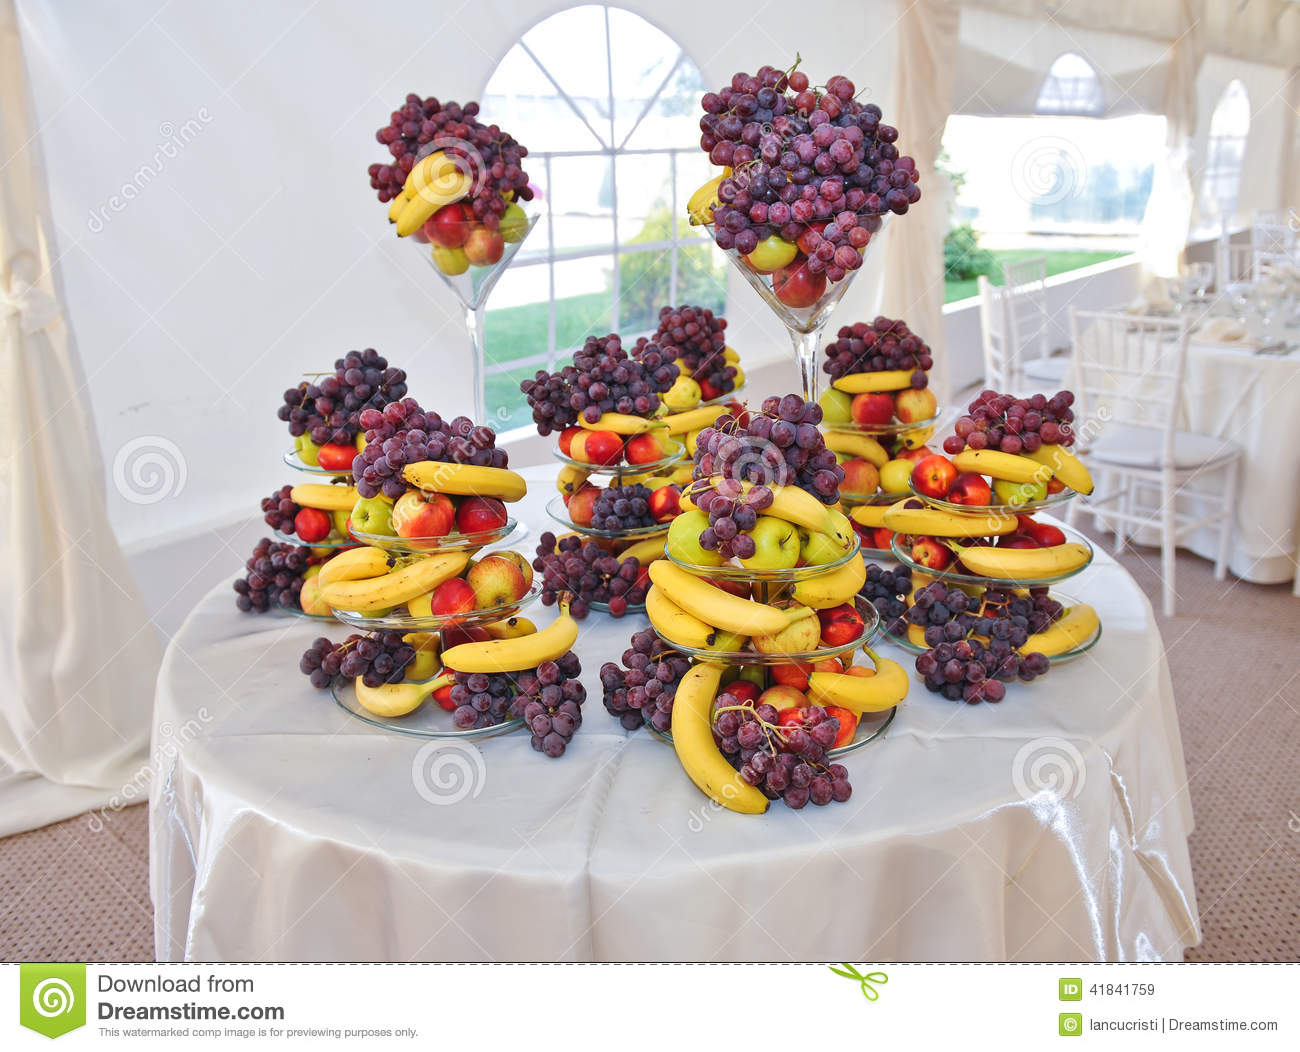 Wedding Decoration With Fruits Bananas Grapes And Apples